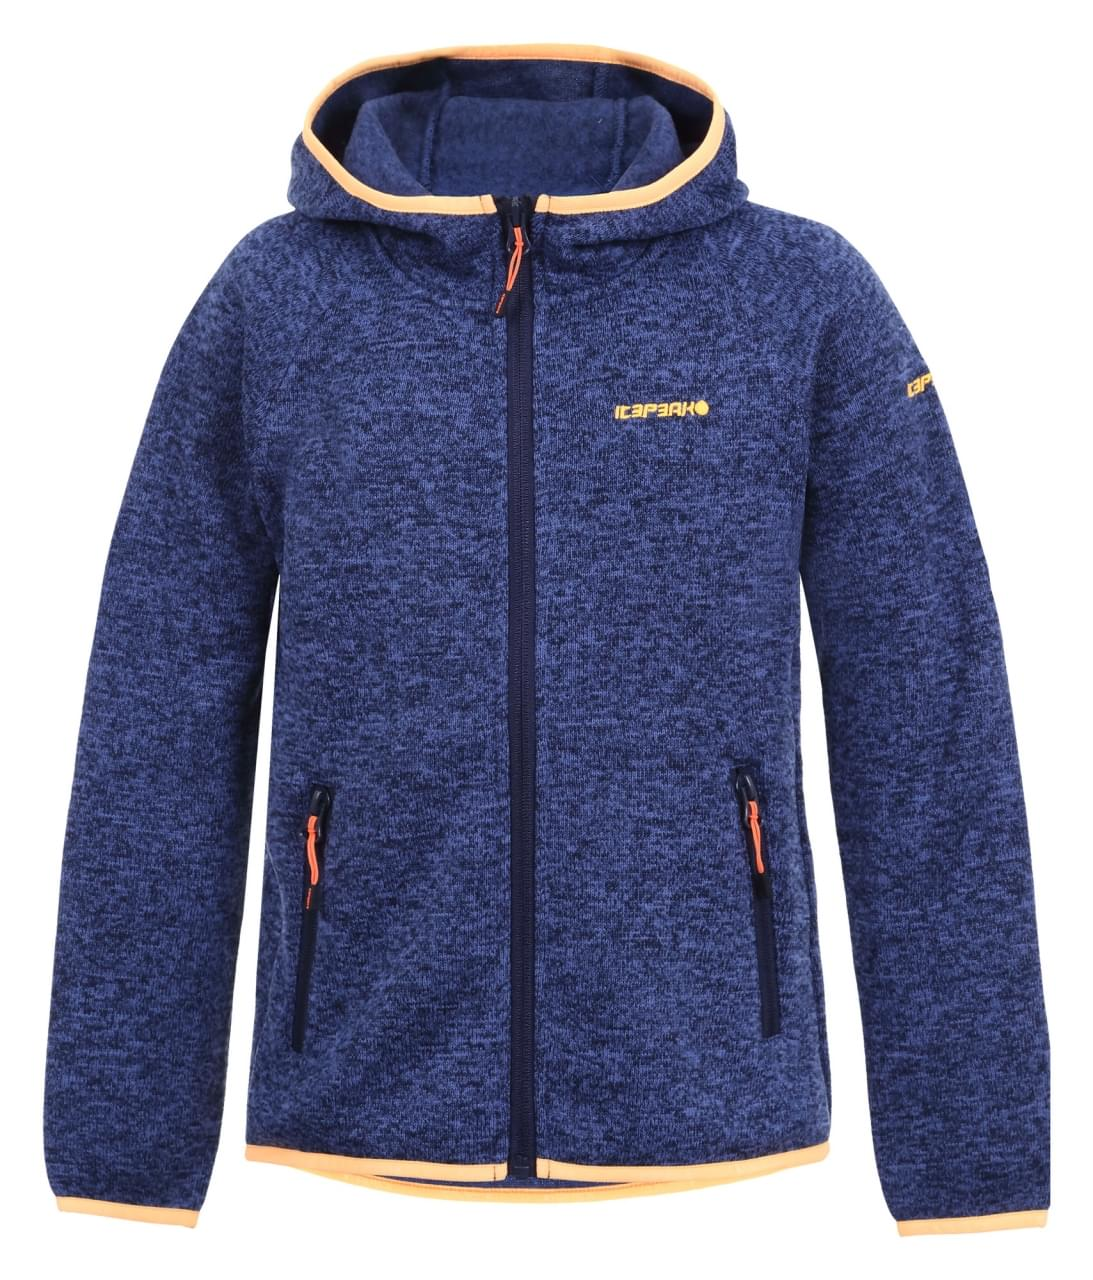 Icepeak Kuna Jr mt. 122 Navy Blue Midlayer